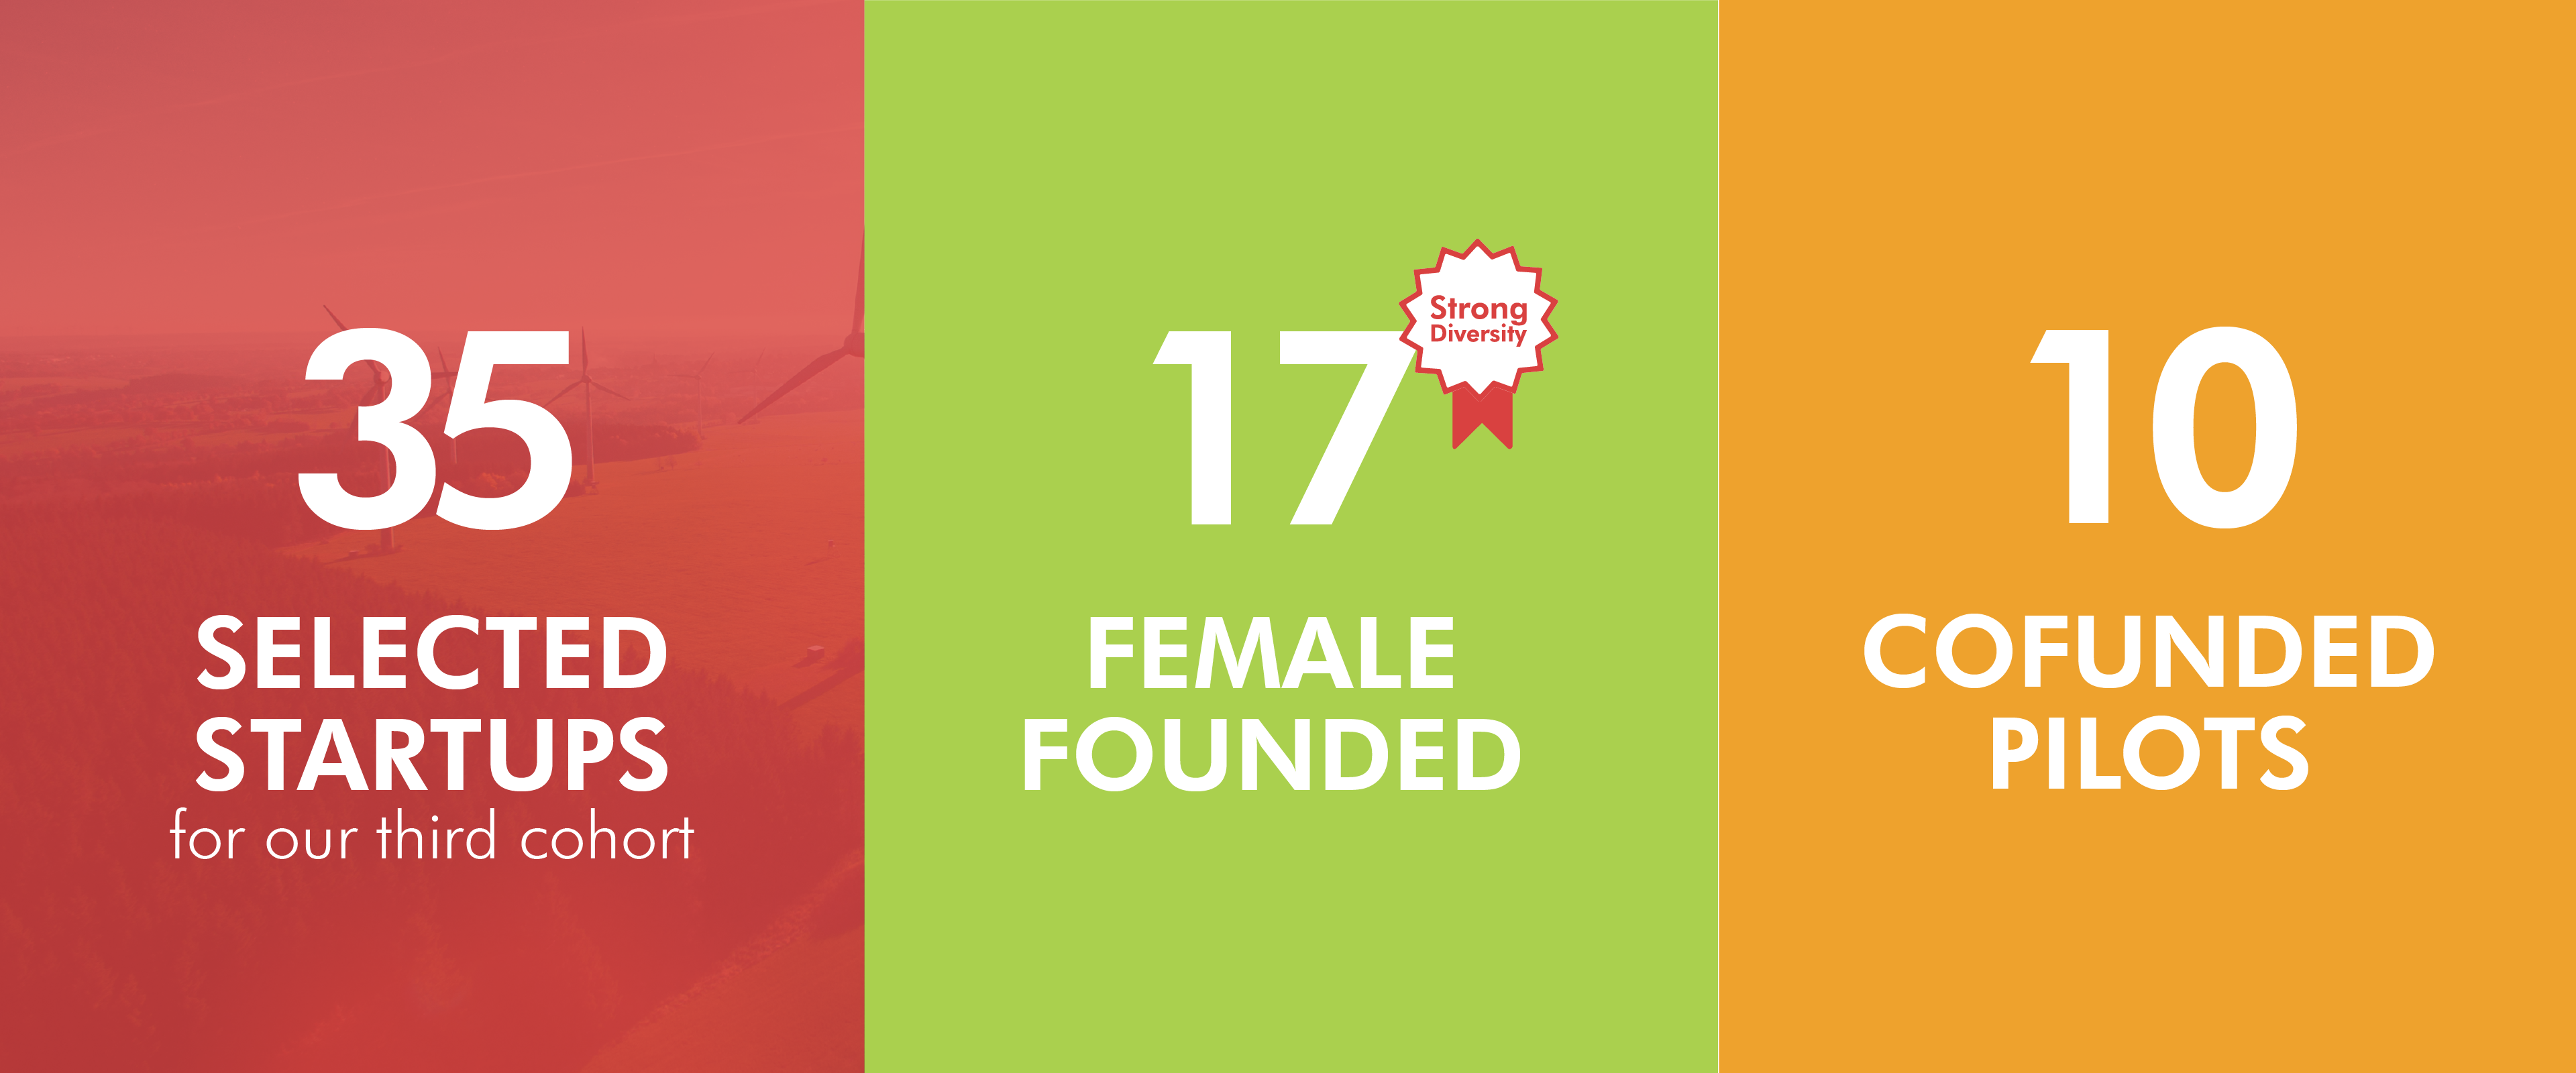 Female founders and joint pilots